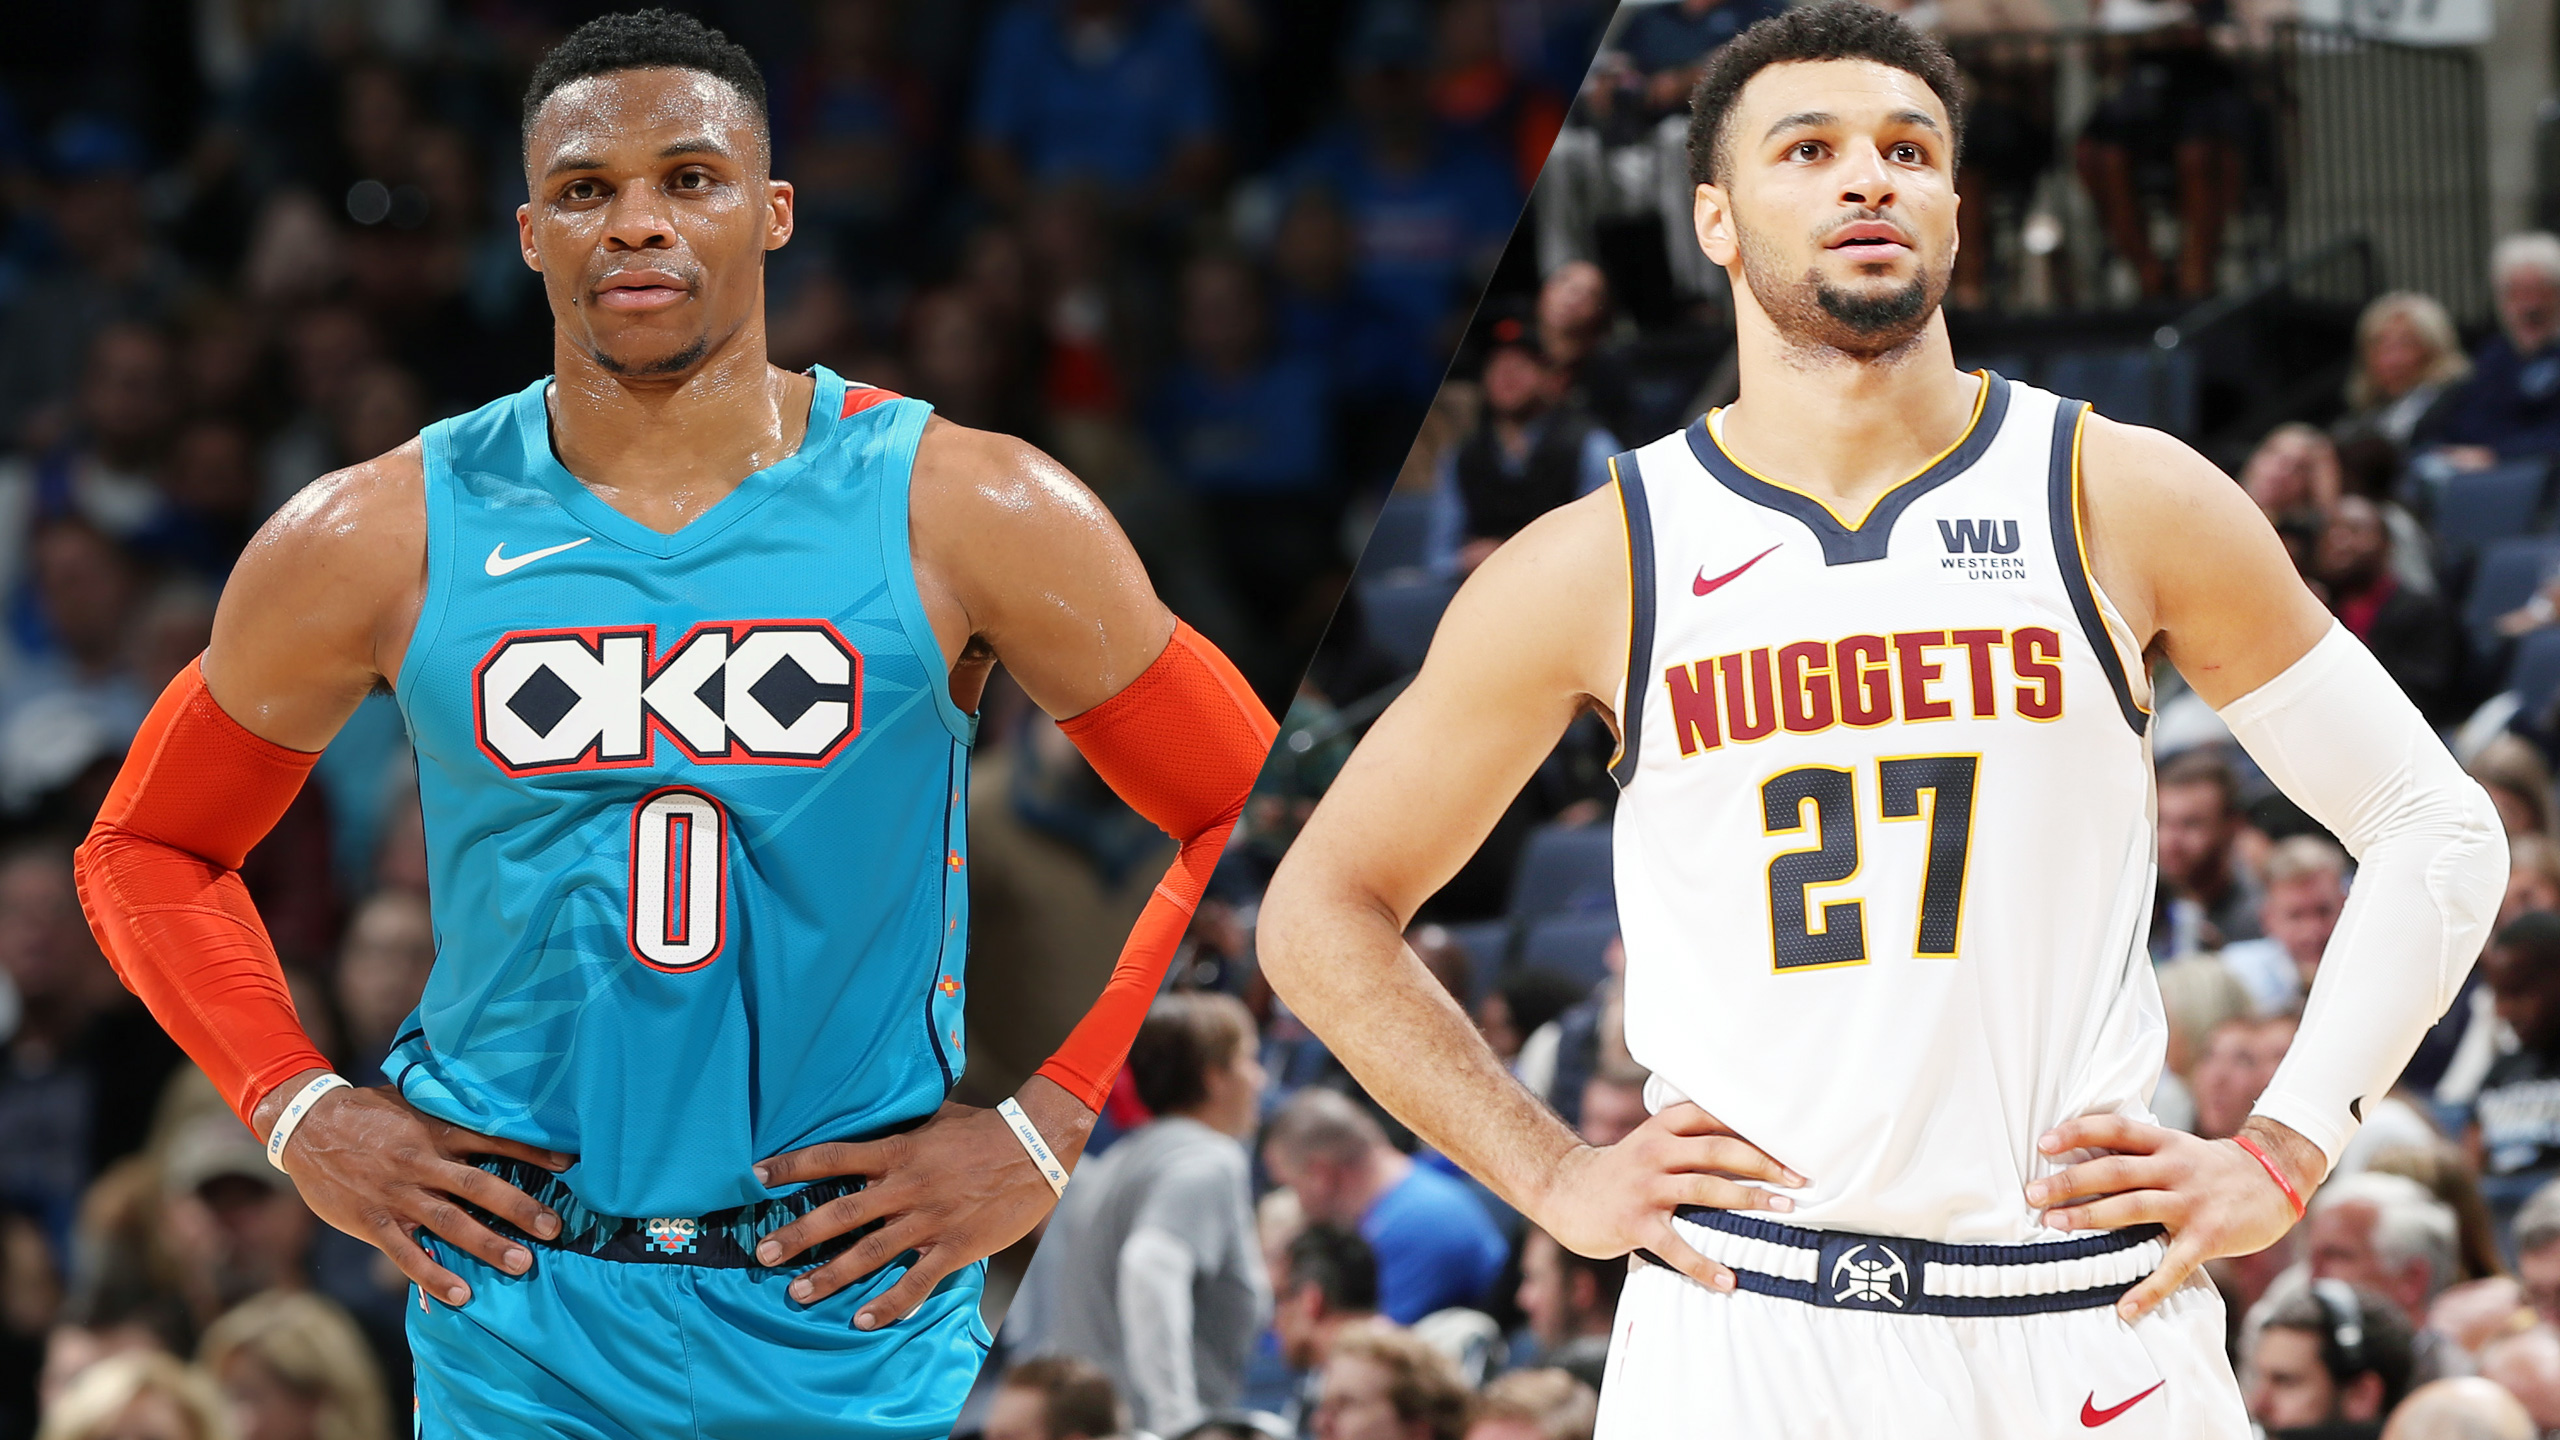 Oklahoma City Thunder vs. Denver Nuggets (re-air)